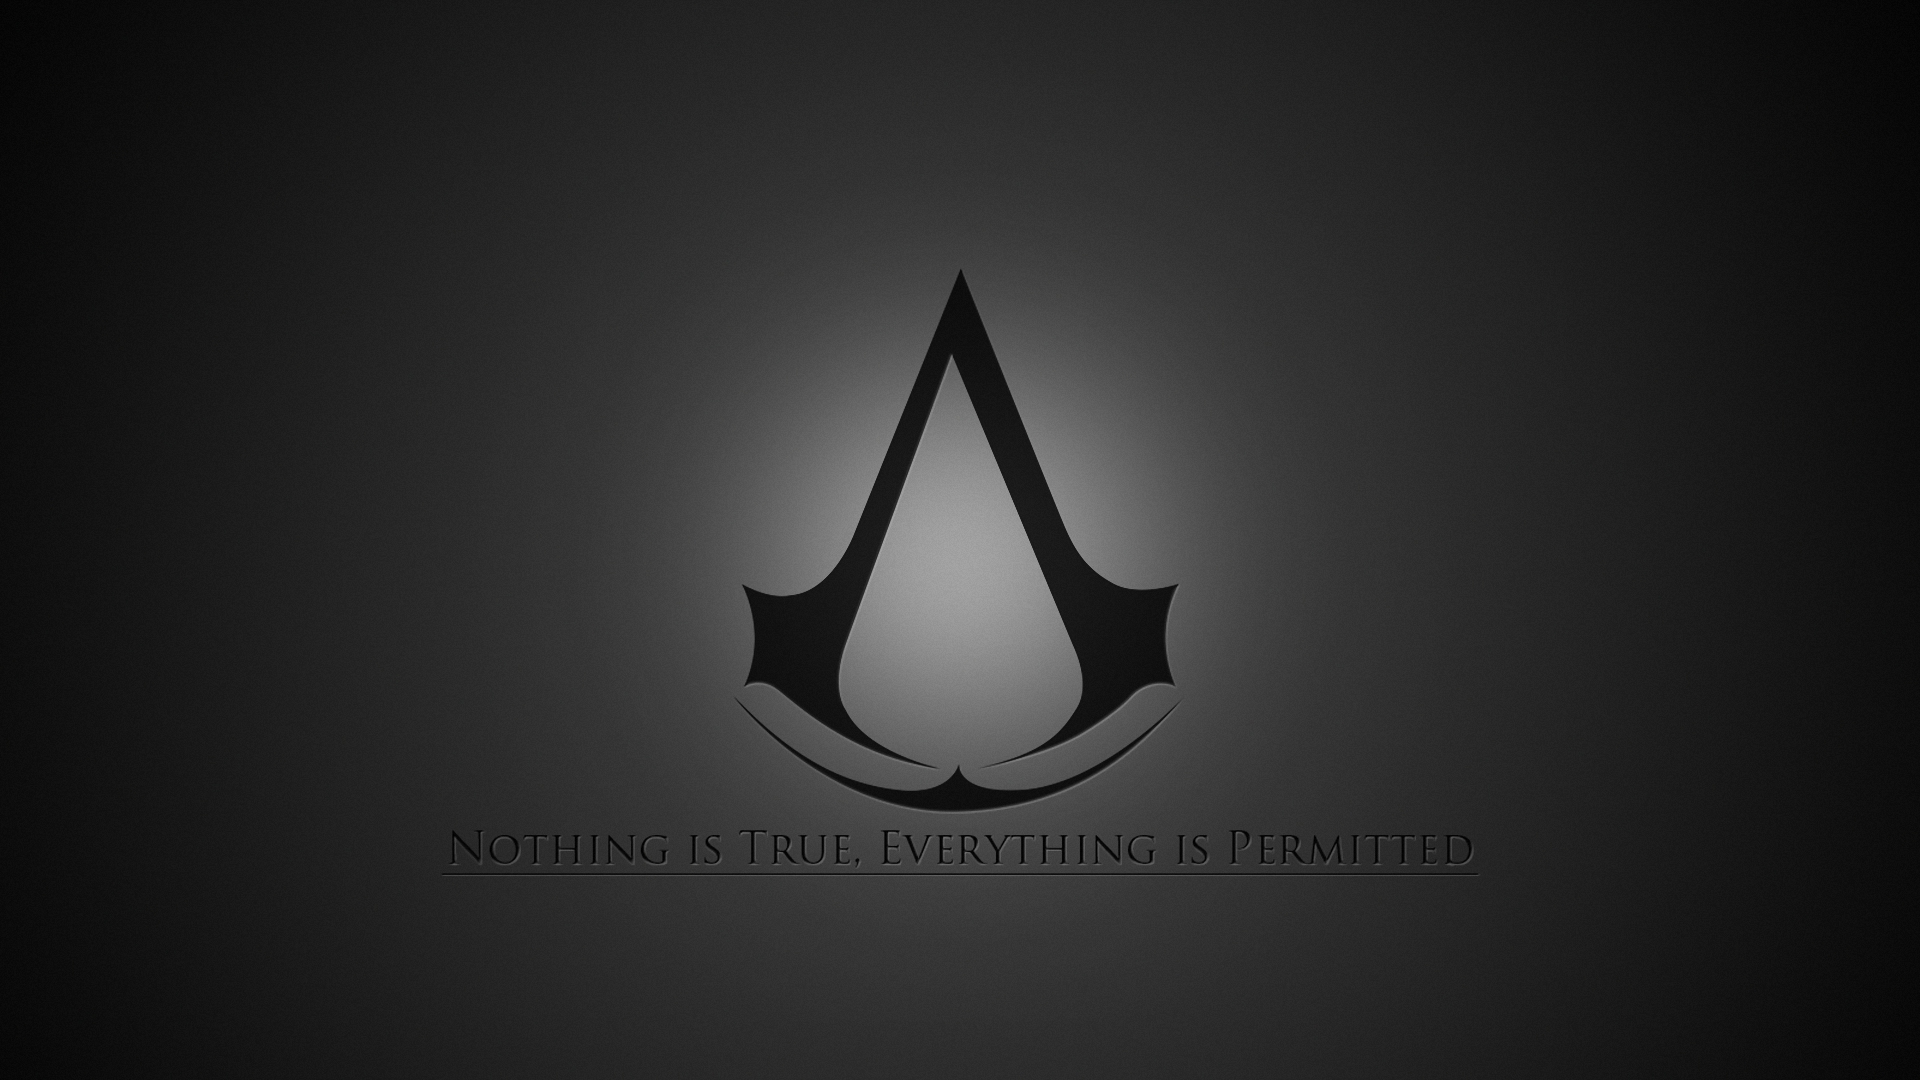 Full HD 1080p Assassins creed Wallpapers HD, Desktop Backgrounds